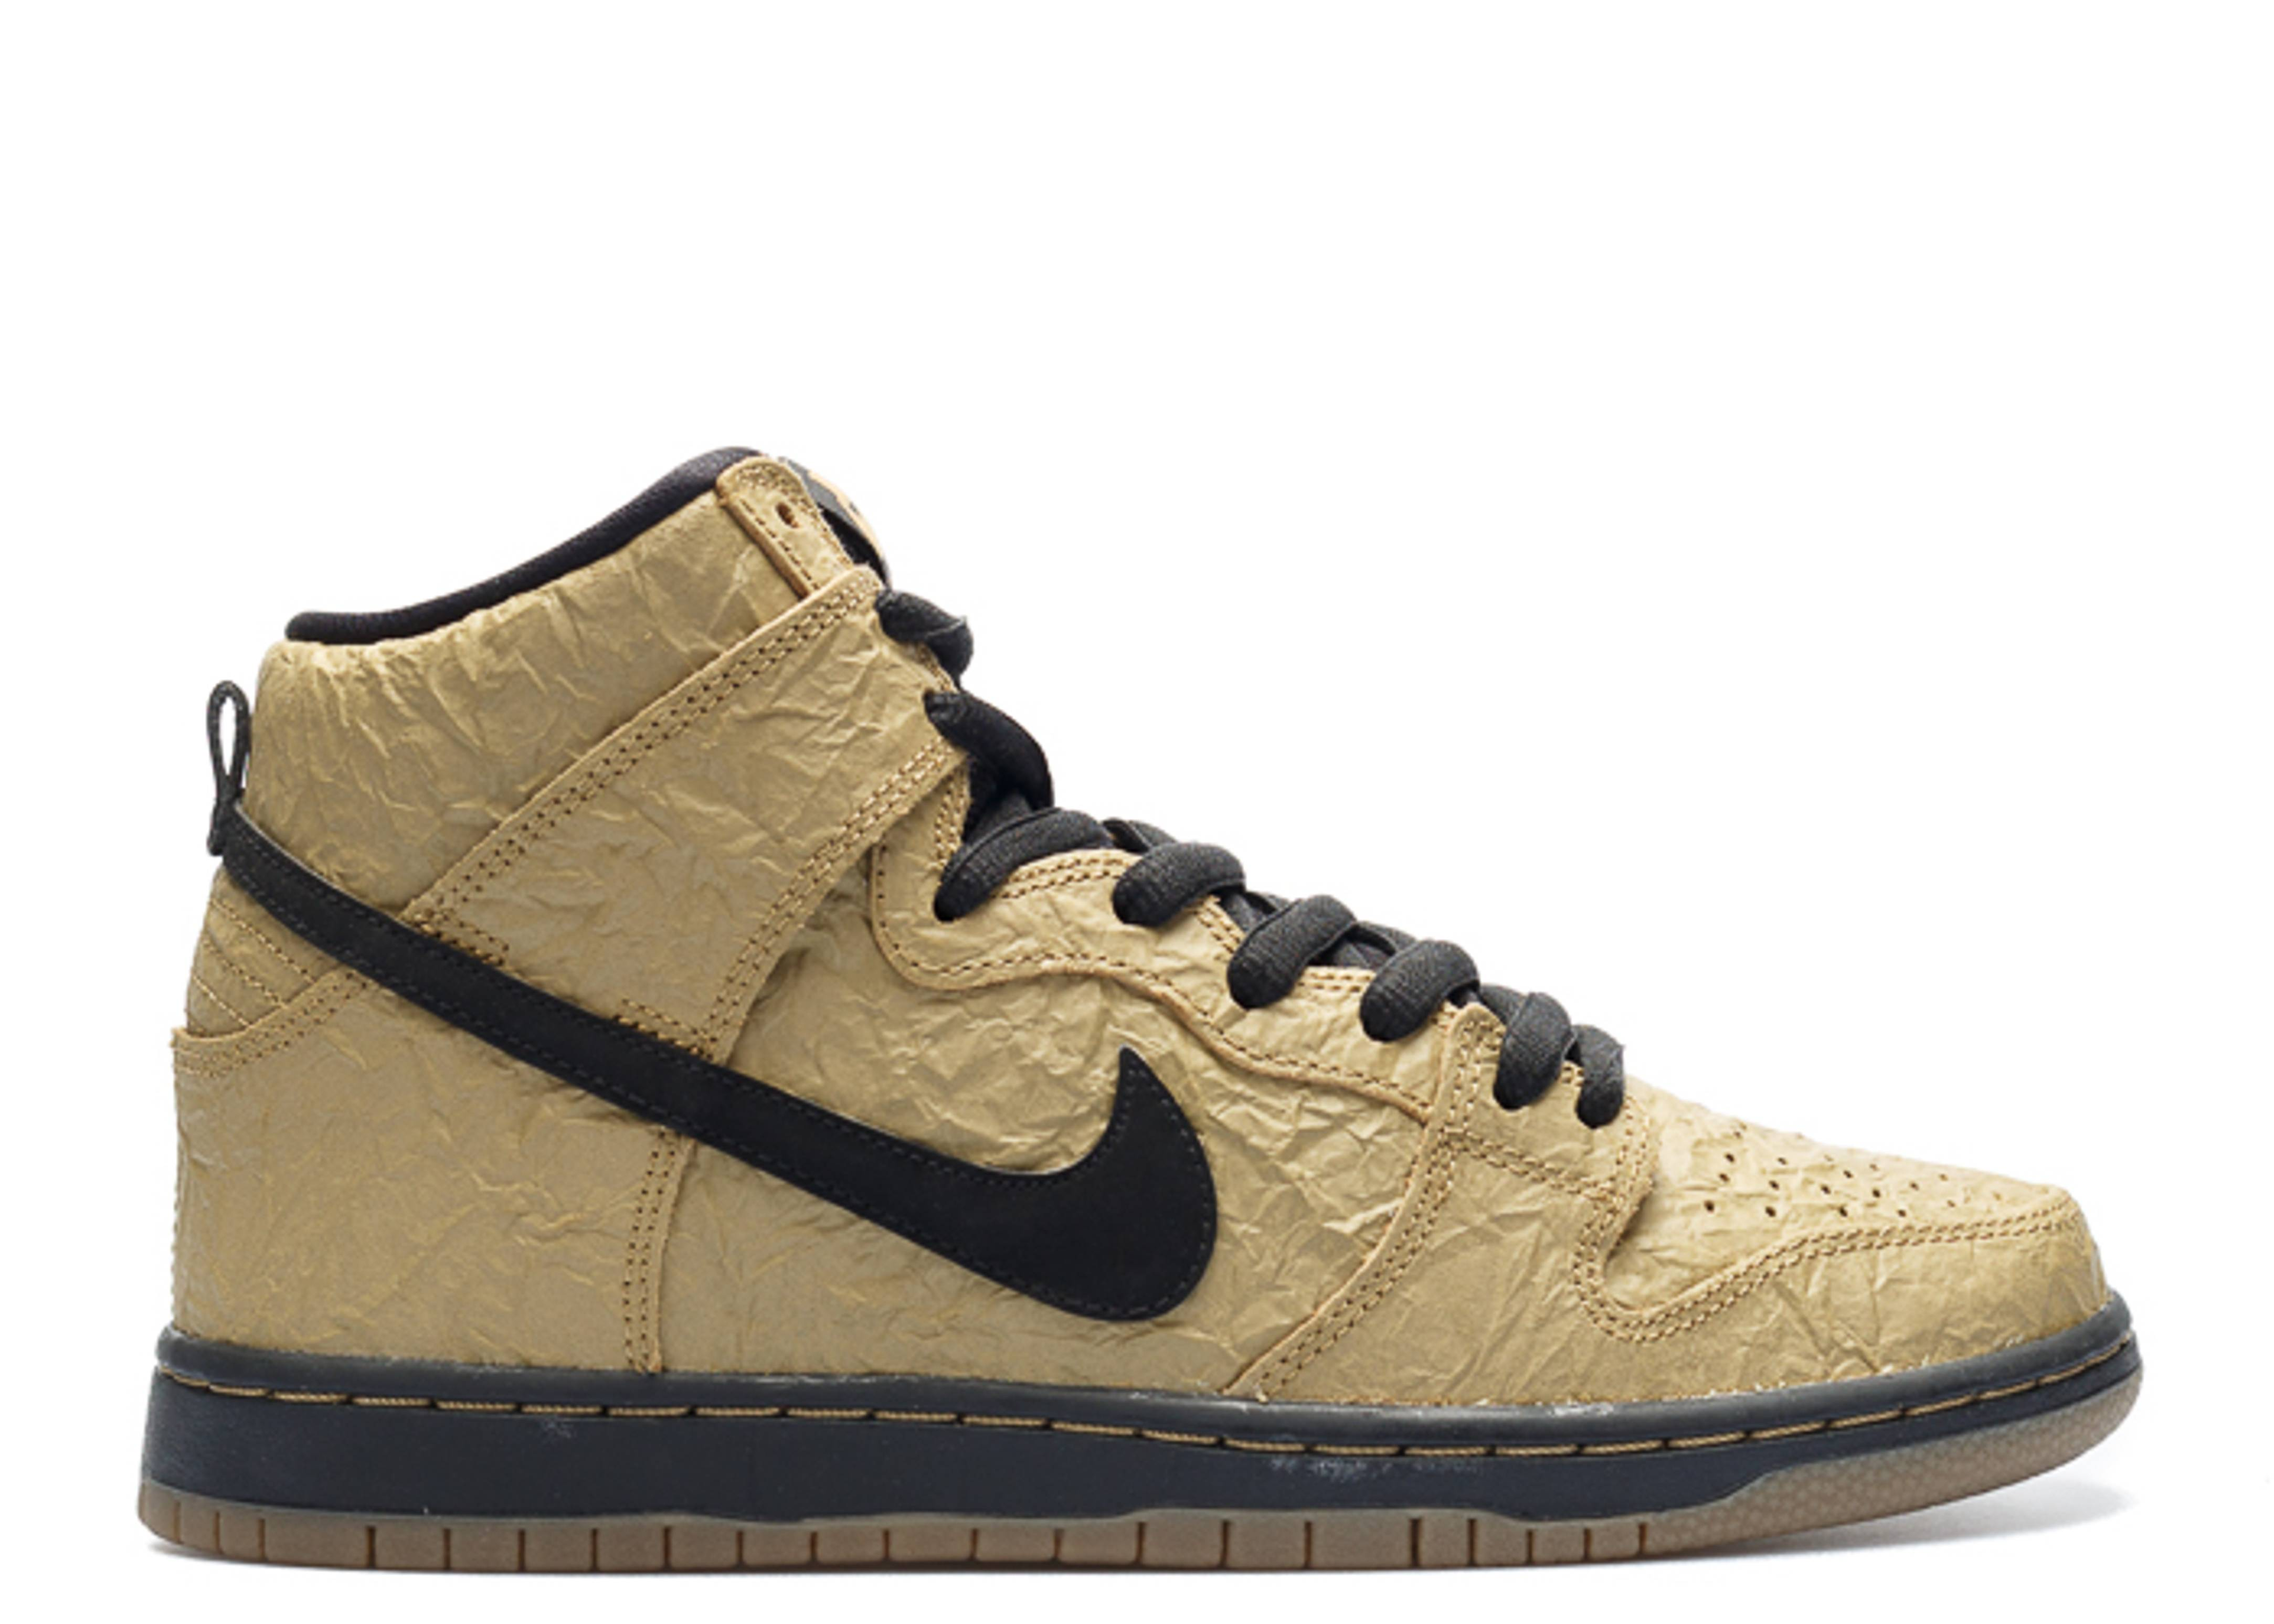 7e6691be5a sweden nike sb dunk high black white gum onlinefamous brand b6819 9658a;  coupon code for nike. dunk high premium sb brown bag fb7bb 625a9